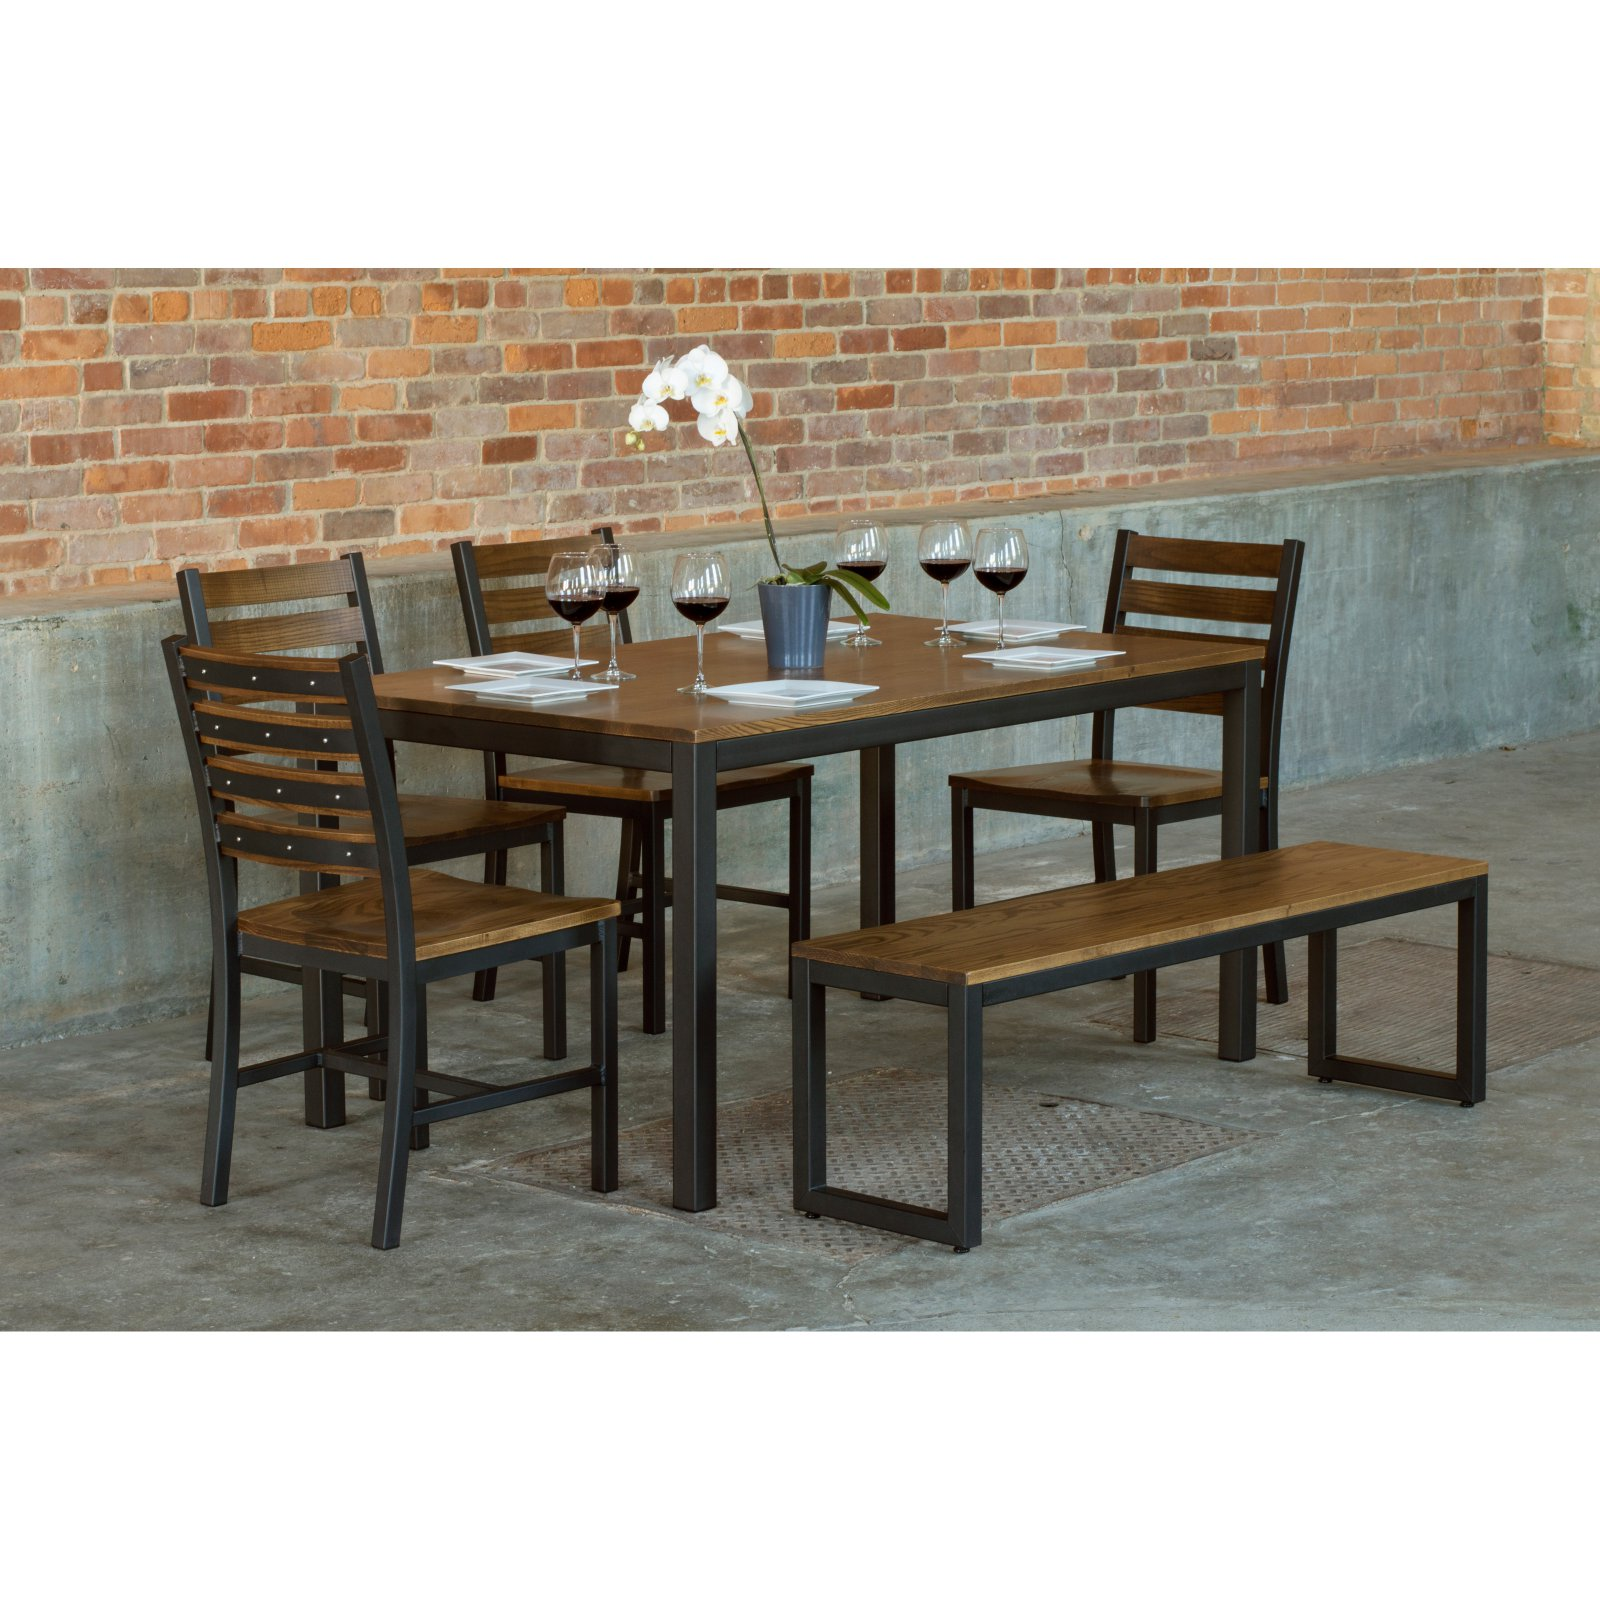 Elan Furniture Loft 6 Piece Dining Table Set